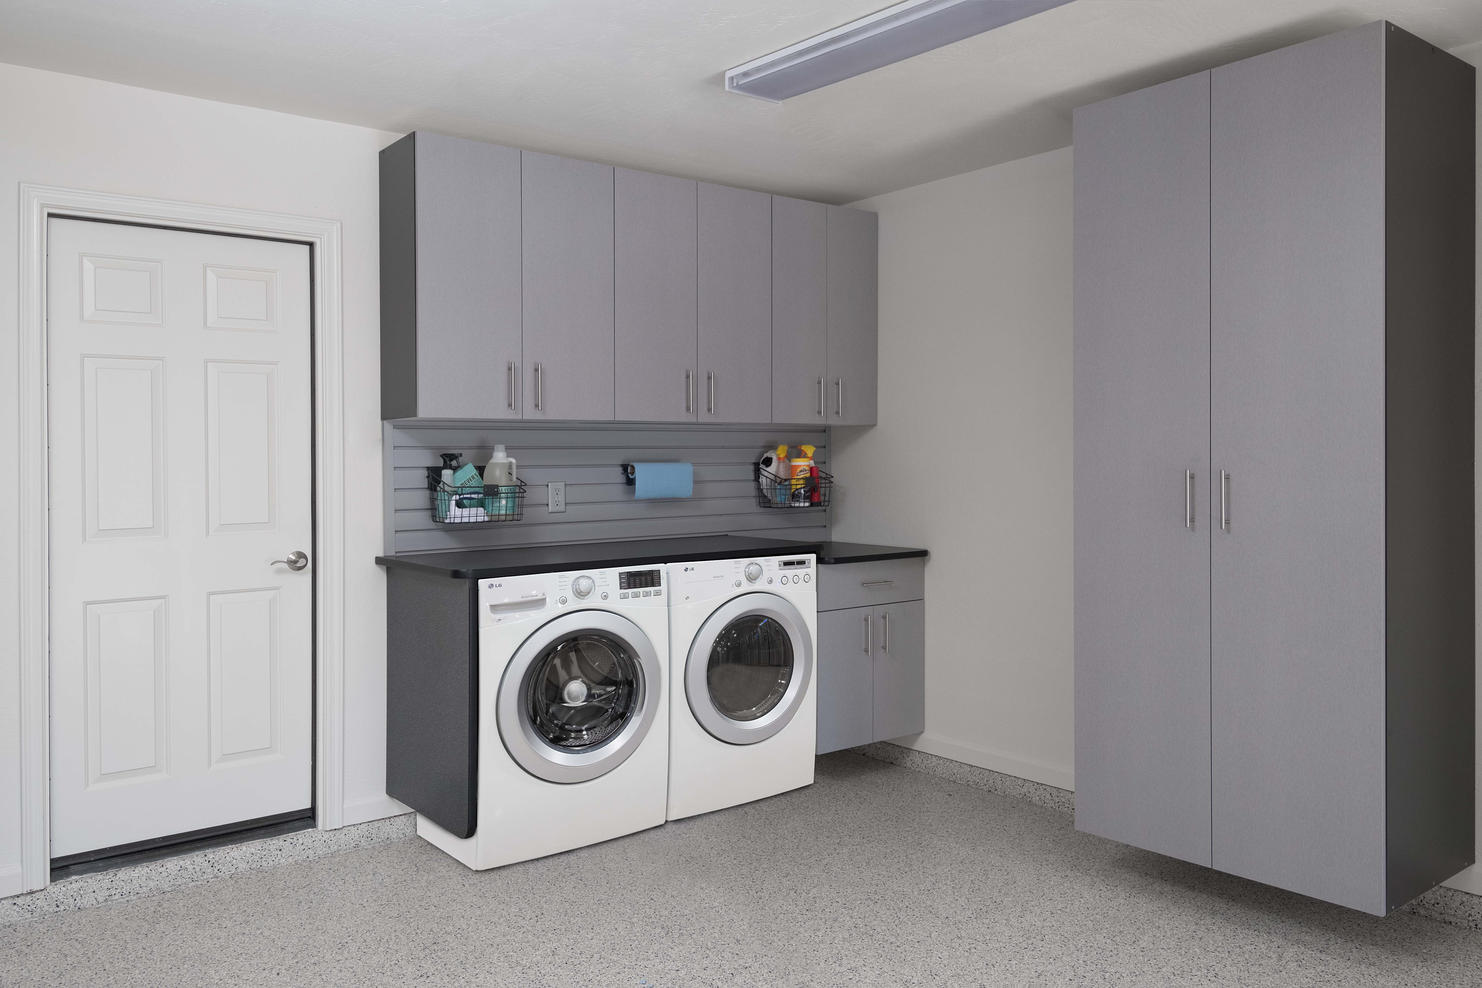 Silver Cabinets with Washer Dryer Angle